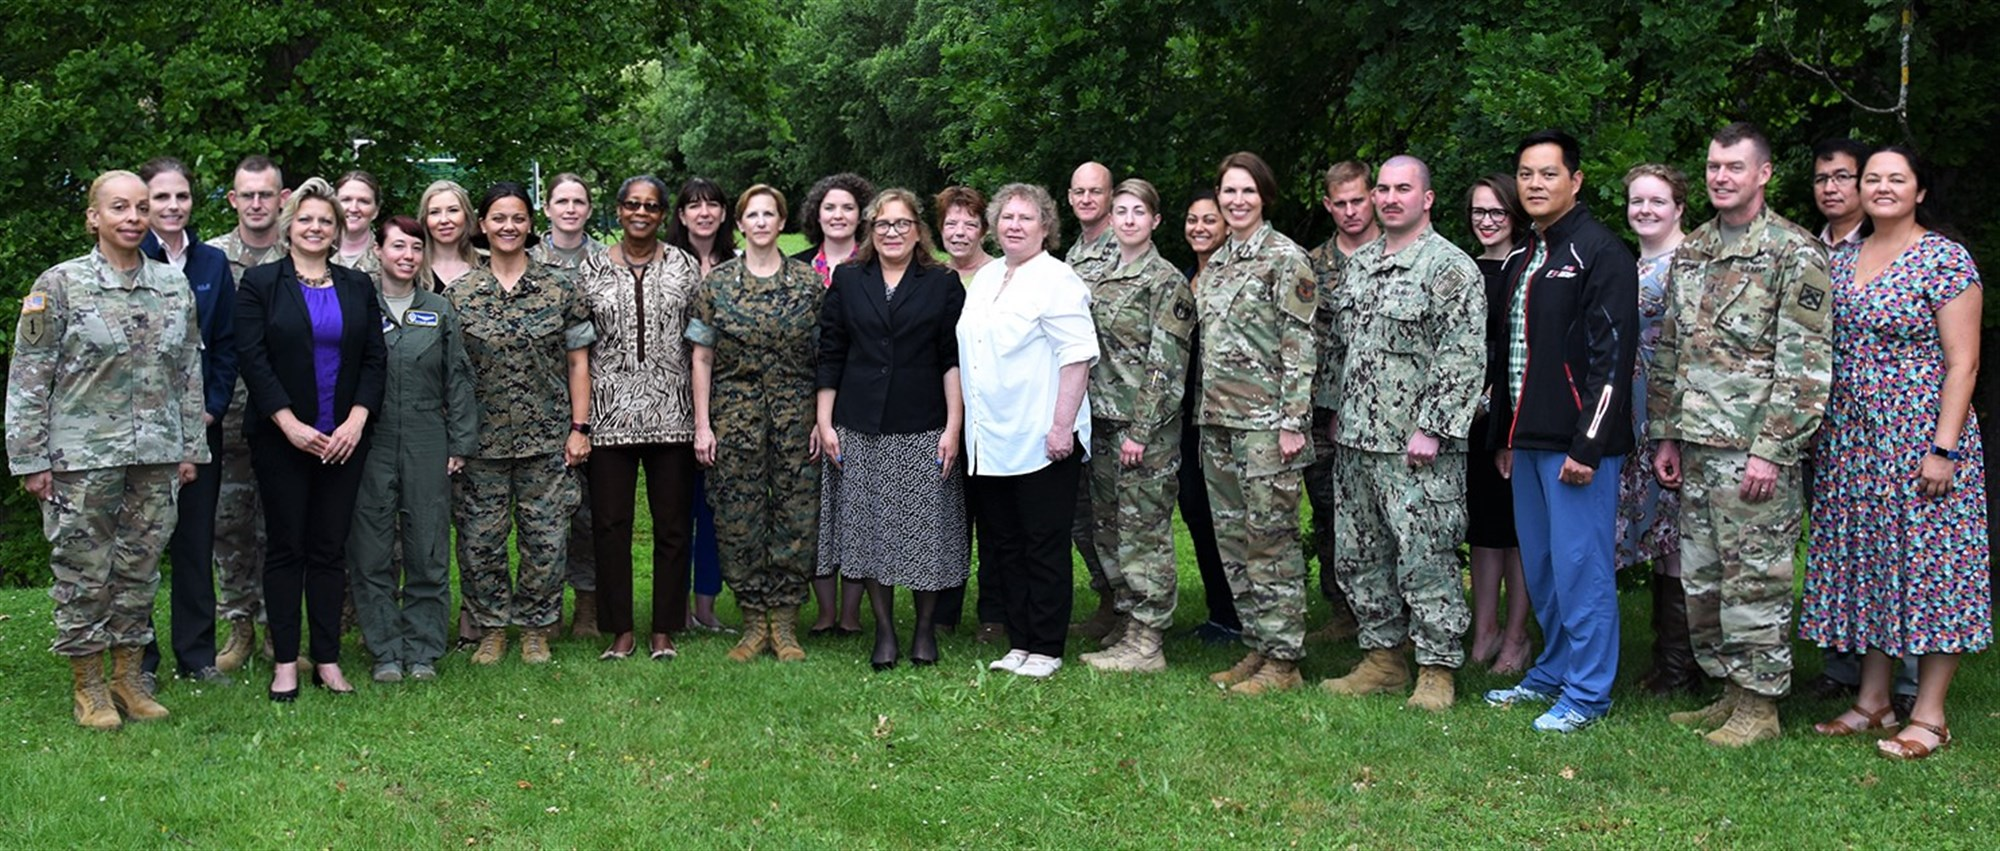 Graduates and Instructors of the first U.S. Africa Command - U.S. European Command hosted Operational Gender Advisor Course pose for a photo June 14, 2019 in Stuttgart, Germany. The course was developed by the Joint Chiefs of Staff to train U.S. military and civilian personnel to serve as gender advisors or human security focal points during an operational deployment or at the combatant command and component level. (Courtesy photo)